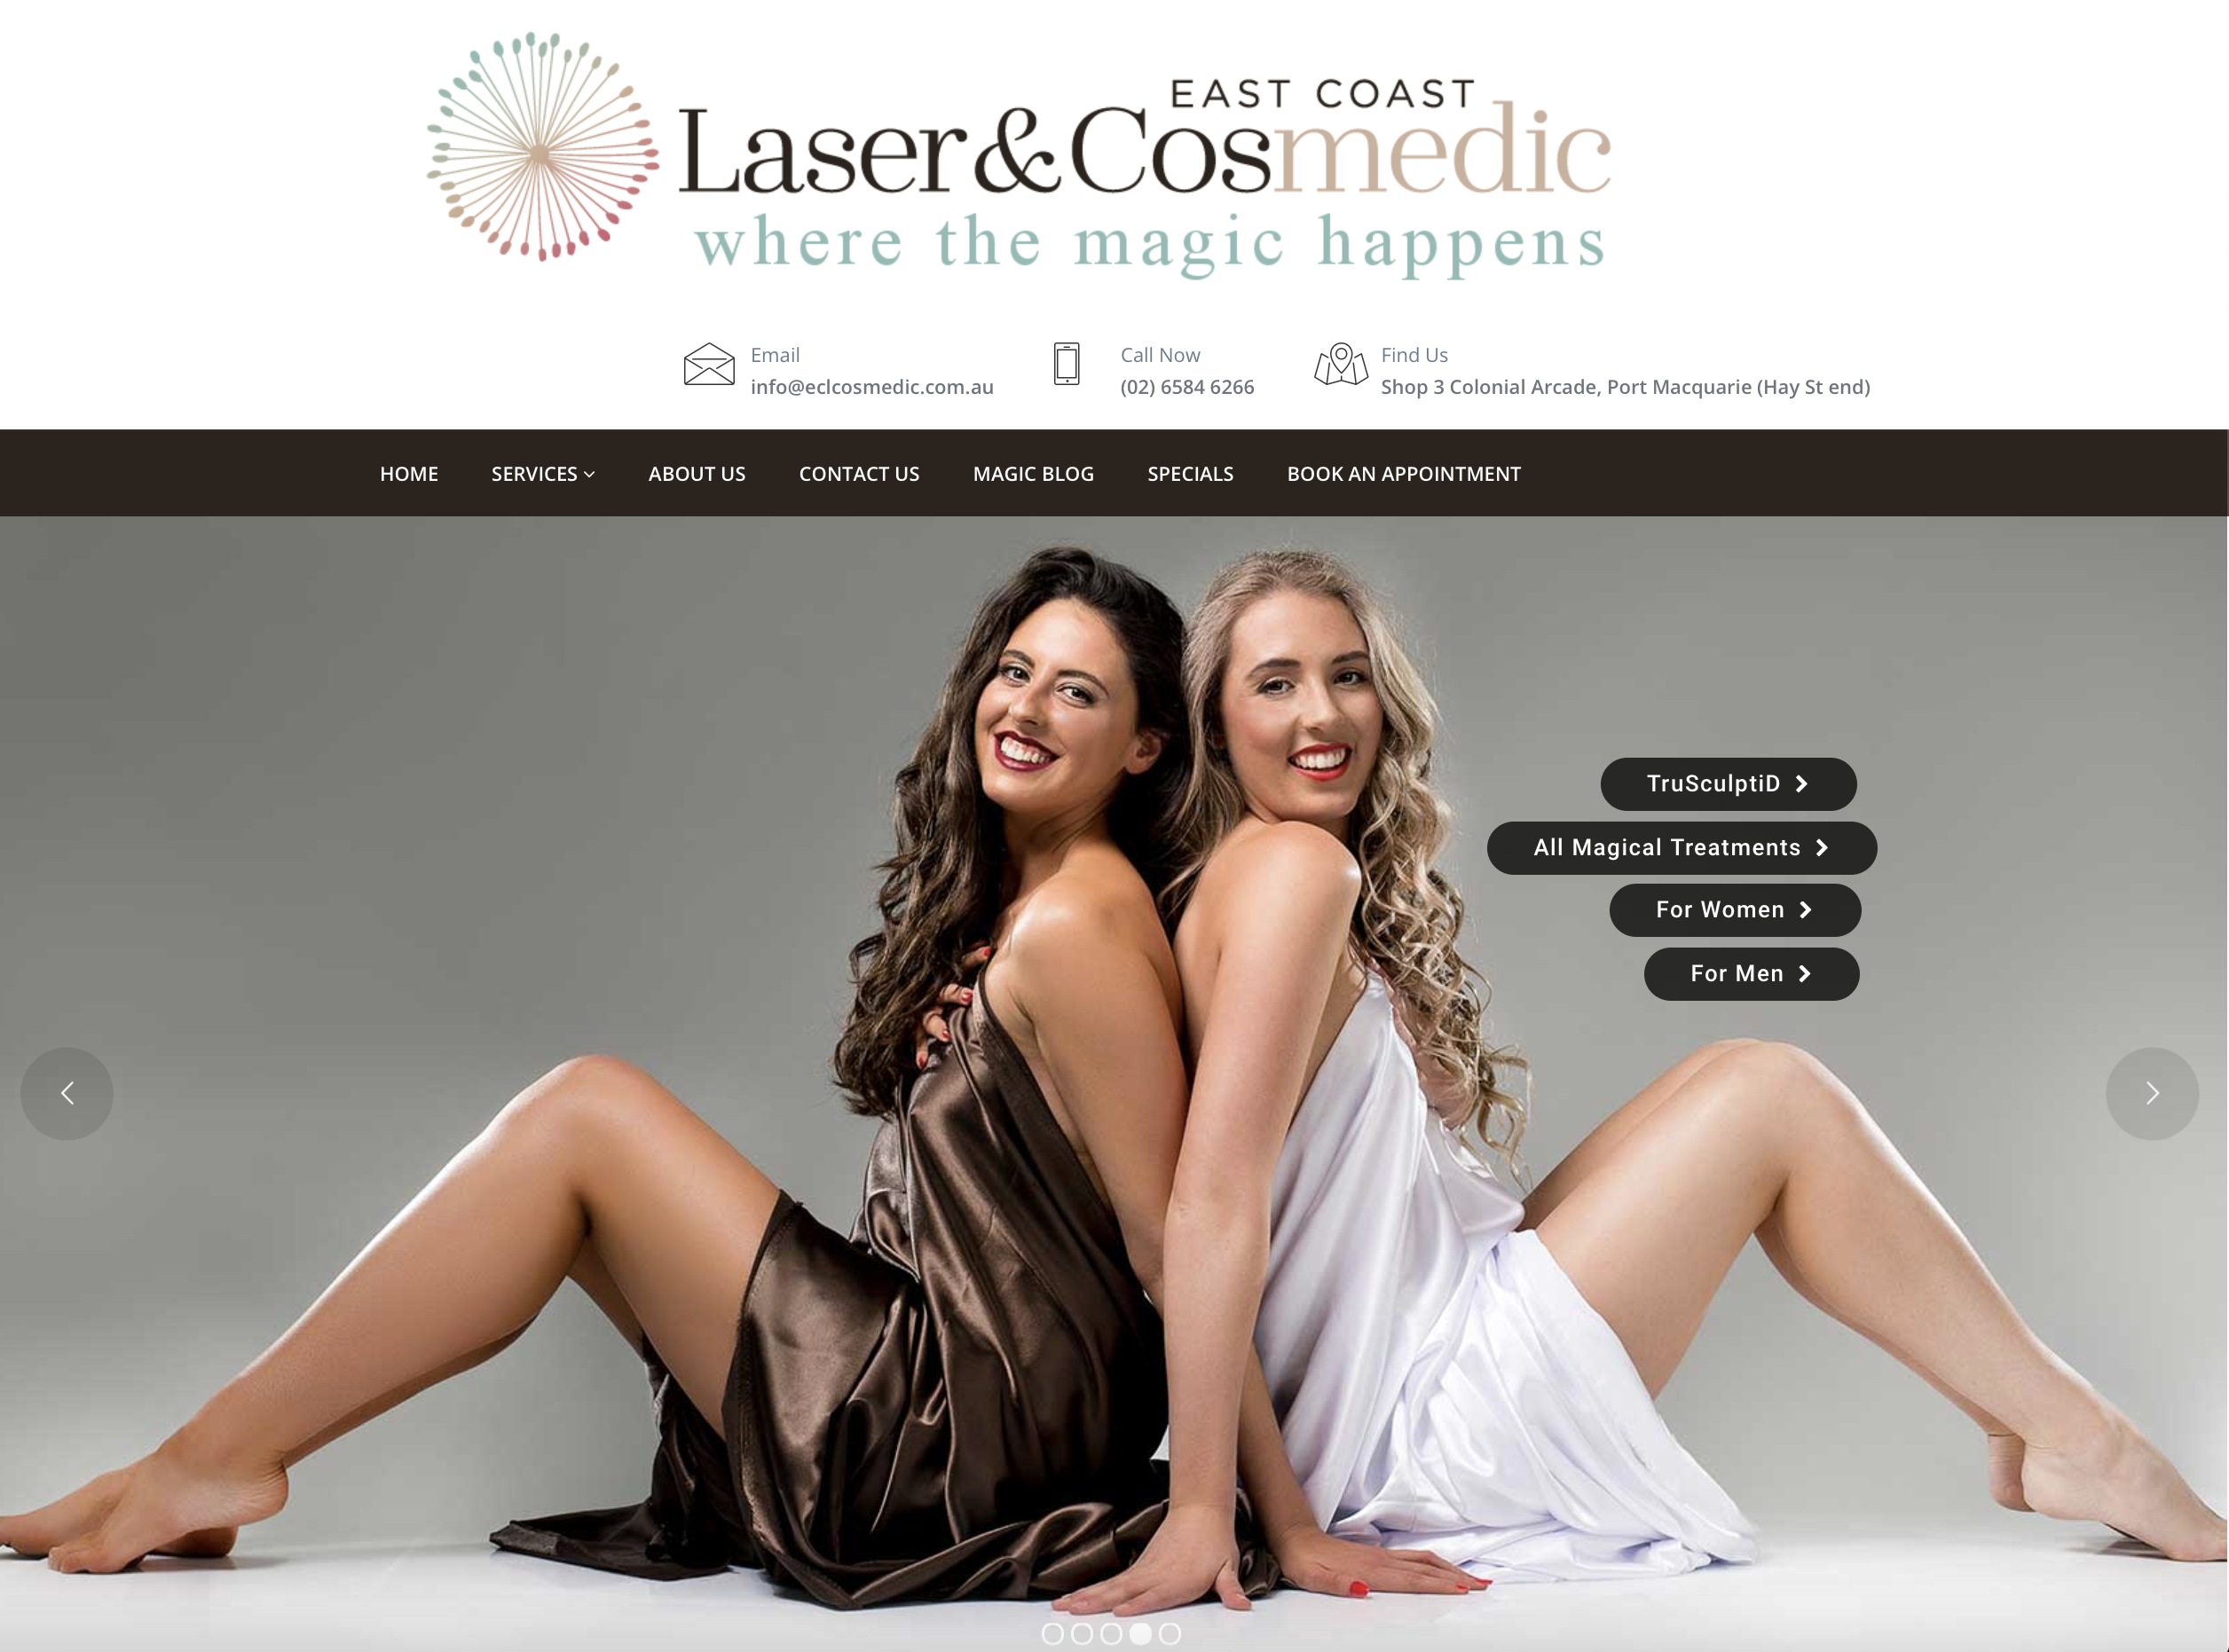 Another engaging website by Vermilion Pinstripes | East Coast Laser & Cosmedic